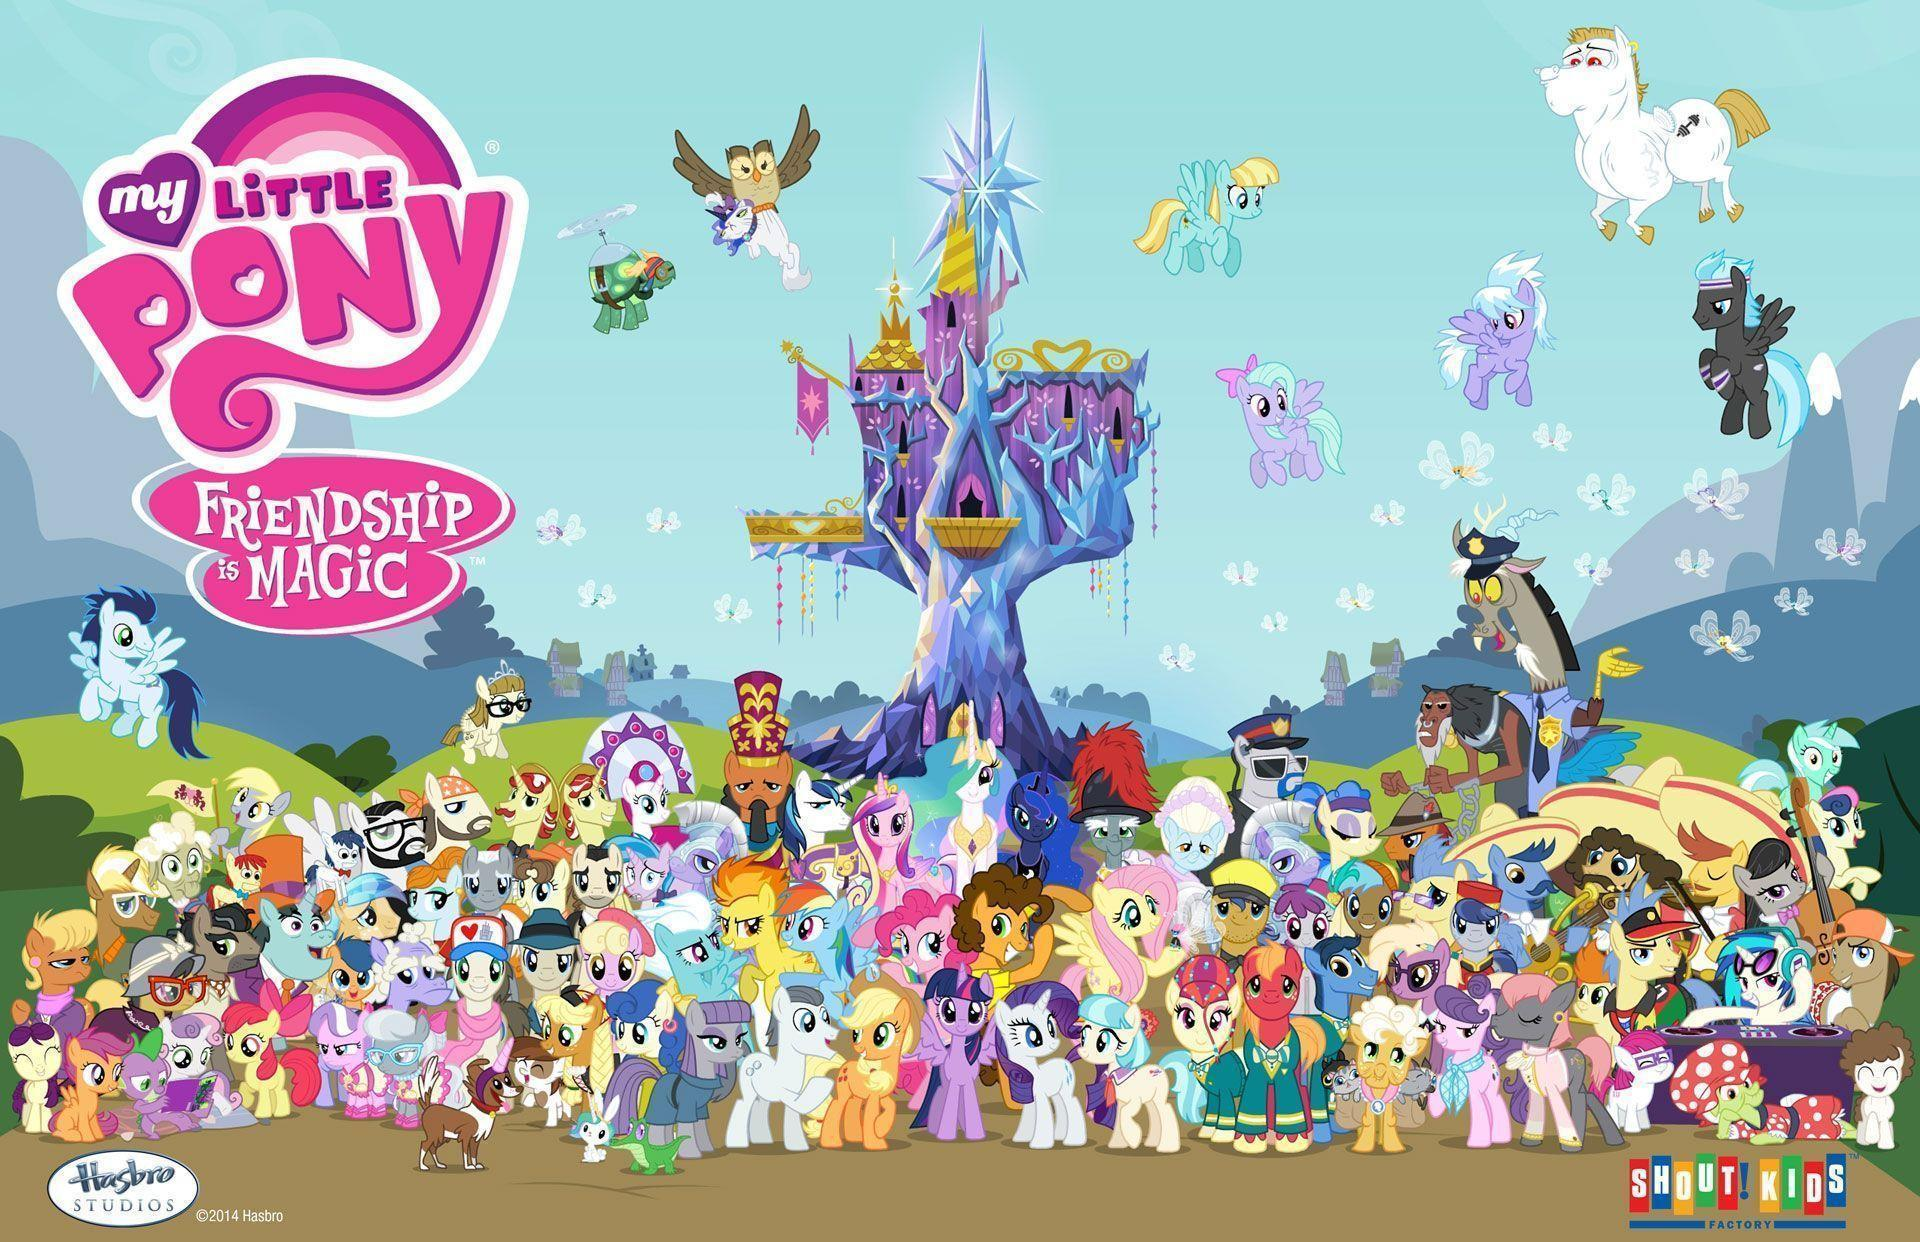 Shout! Factory - The Top 5 My Little Pony: Friendship Is Magic ...